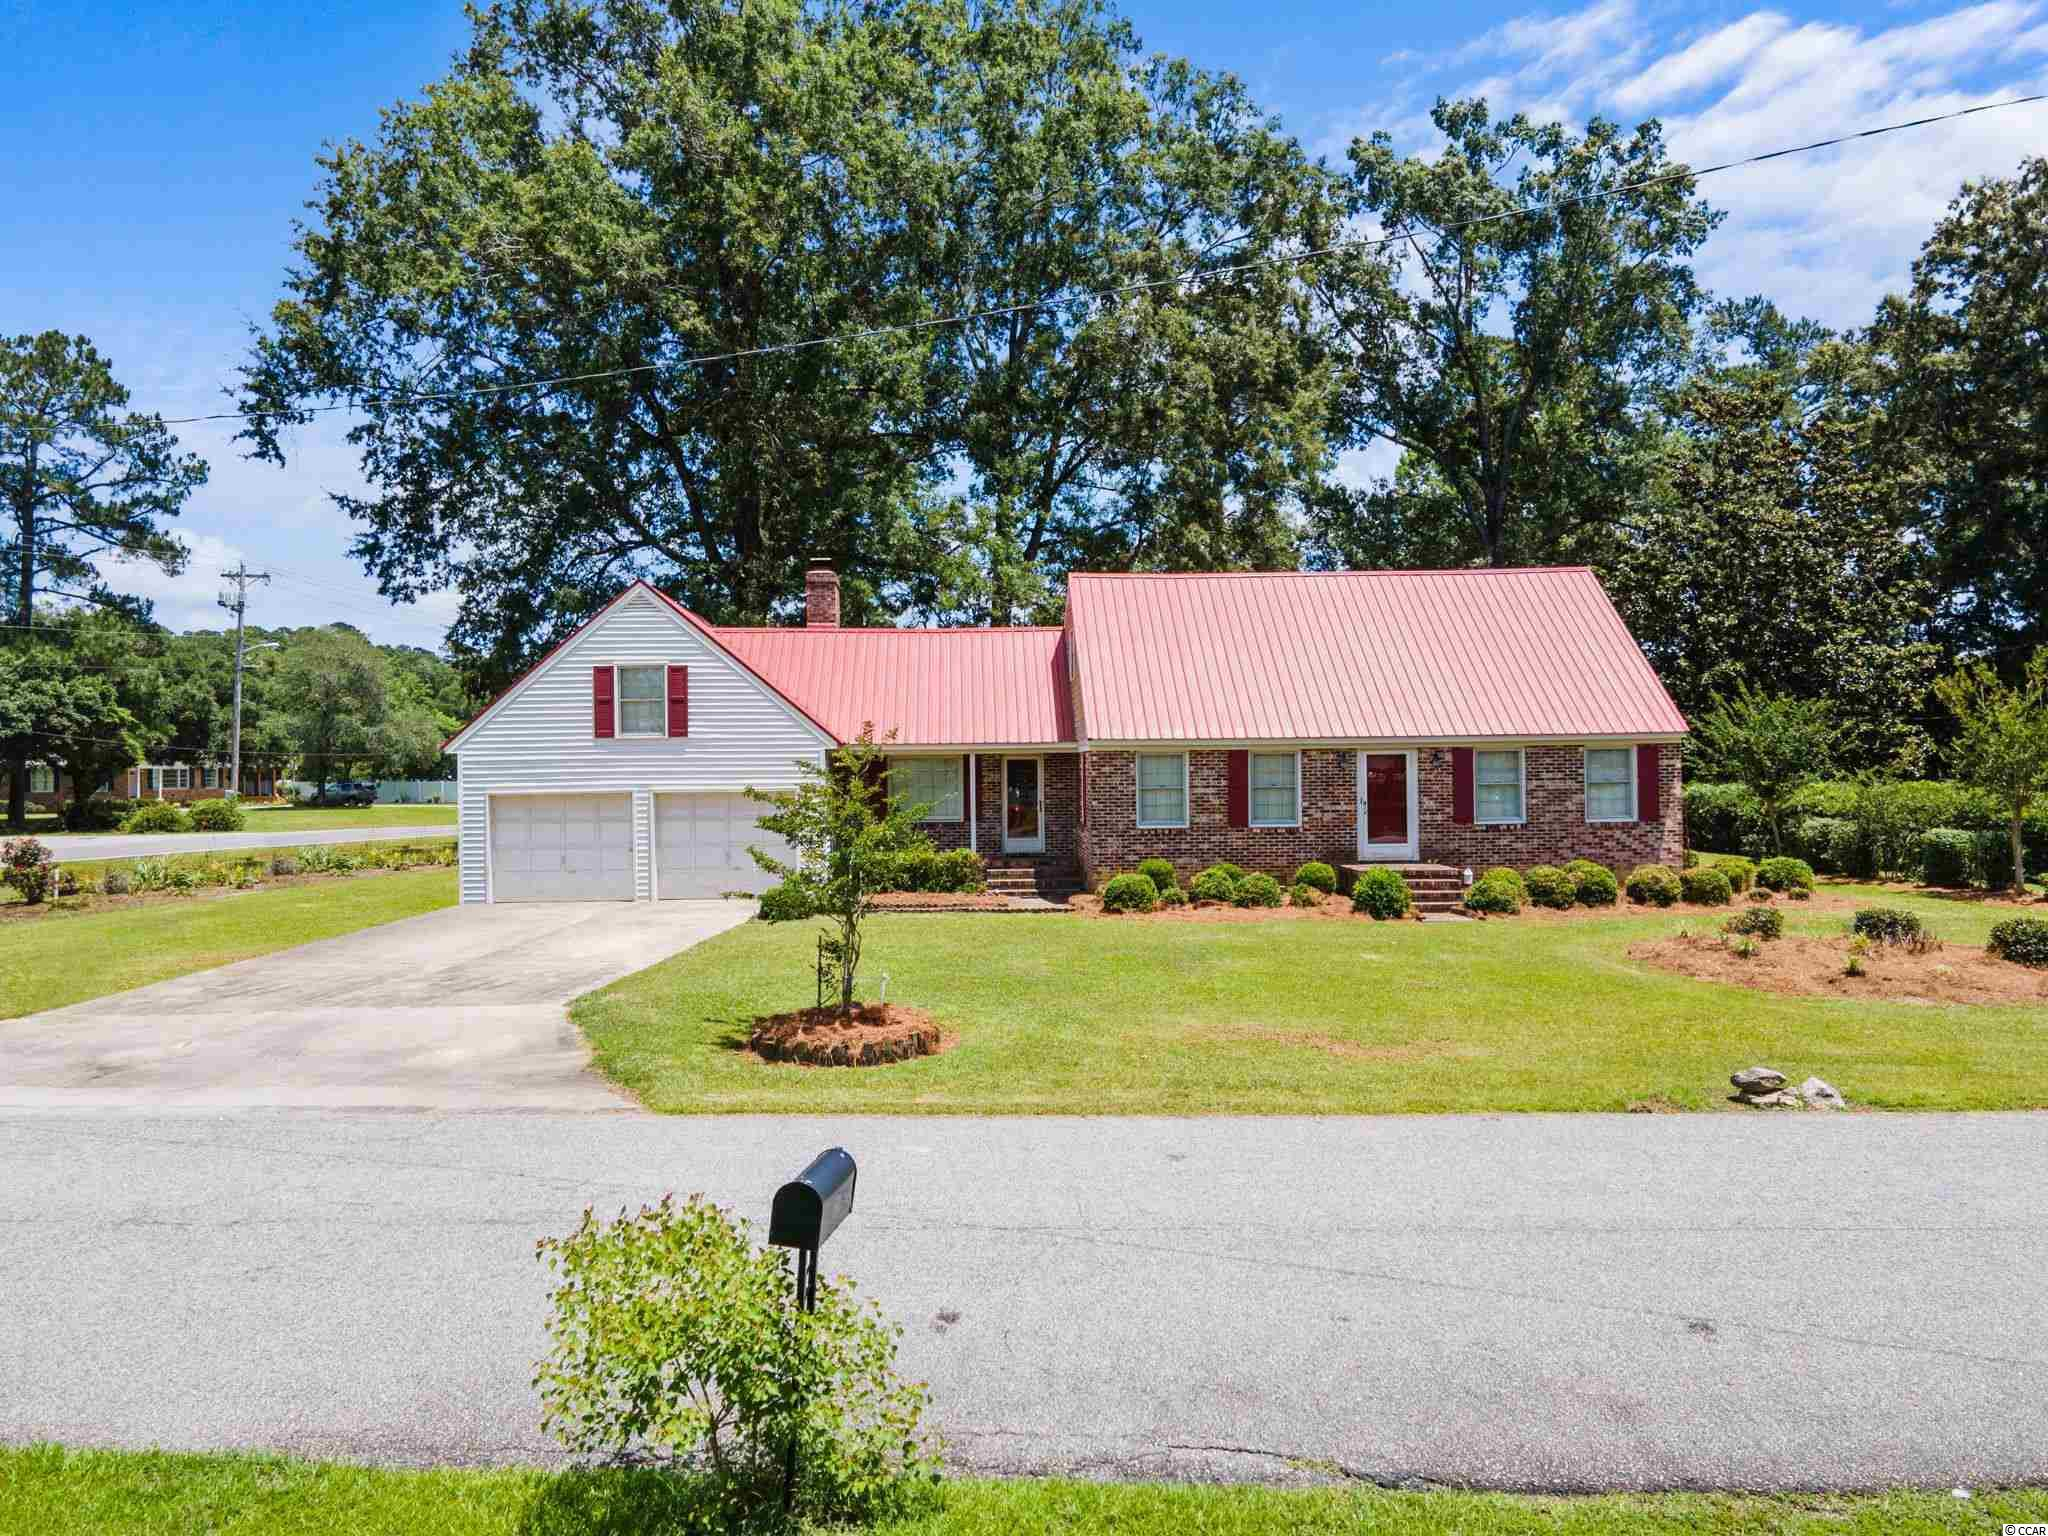 Located just minutes from historic downtown Conway, this brick 4 bedroom/2 bath home sits on a beautiful corner lot on over a half acre in the well-established Conway Country Club area.  This home has lots of space to spread out with family and friends to enjoy a large backyard with mature trees and garden beds throughout.  Inside you will find a brick fireplace that sits at the helm of the family room that adds a perfect touch of character.  The home offers a formal dining area, two bedrooms downstairs with a full bath and two oversized bedrooms upstairs with another full bath.  There are several easily accessible storage areas throughout the upstairs with a large walk in attic space.  A large bonus room over the garage includes built in bookshelves and makes a perfect space for a media room or additional living space. A unique floor plan can be accommodating to any size family.   The land surrounding this home offers a rare opportunity and space for gardening and outdoor entertainment.  The home has a metal roof that was installed in 2016 as well as a brand-new upstairs HVAC unit with warranty installed in June of 2021.  This home is being sold AS IS and is not located in a flood plain and doesn't have an HOA!